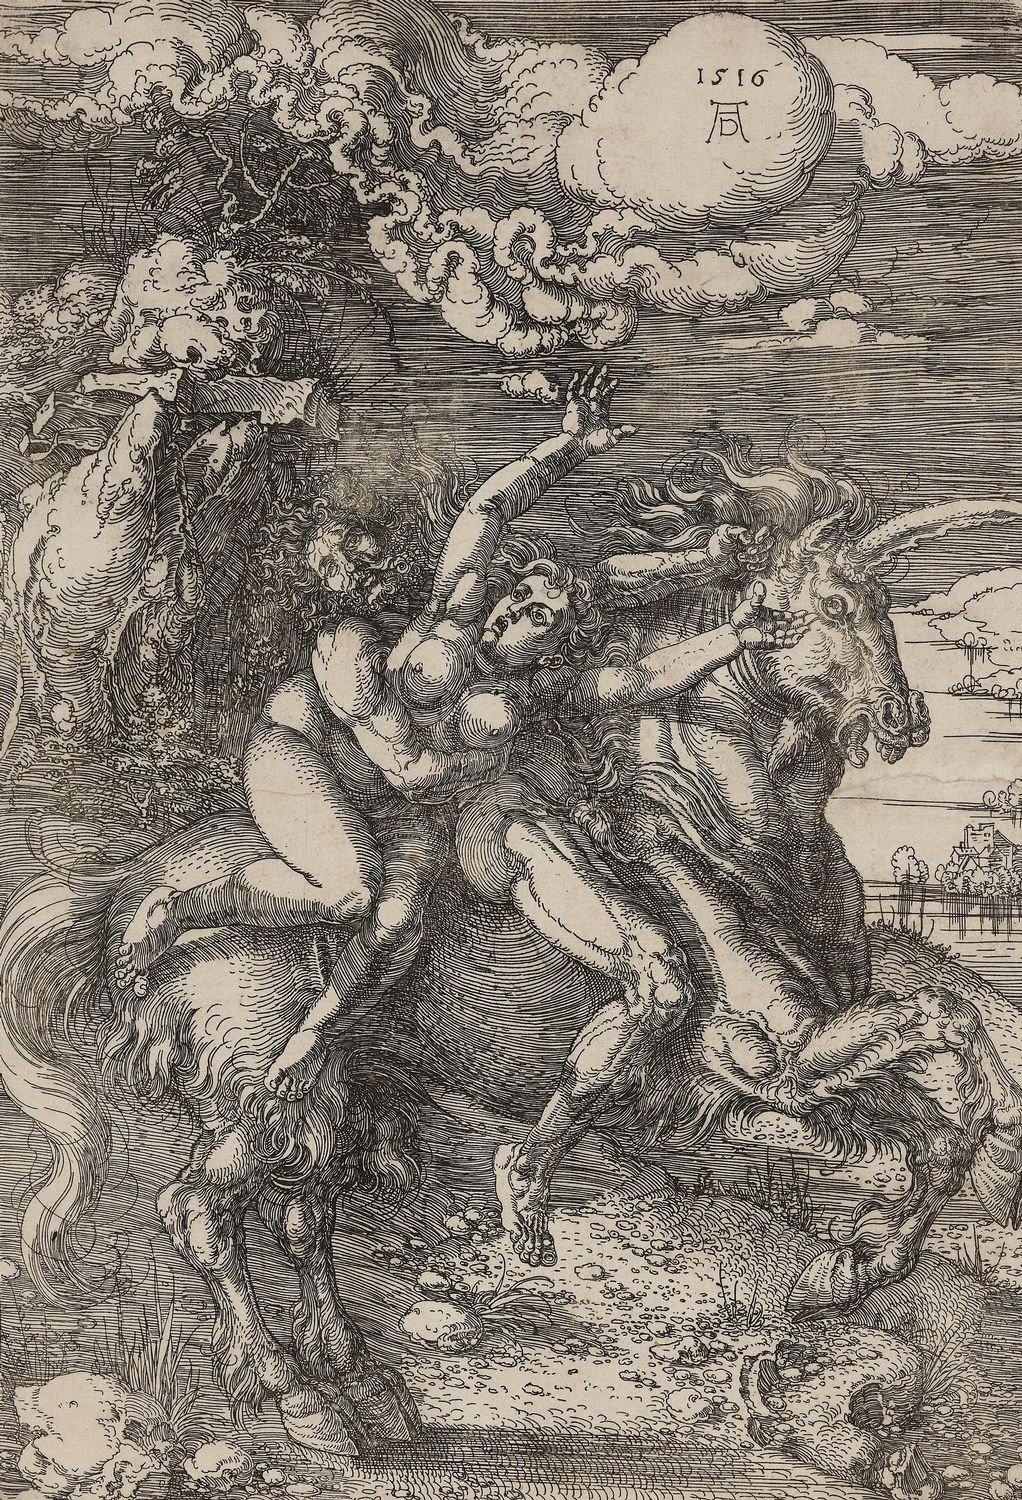 COMPARANDUM: A woman abducted by a man on a unicorn, 1516, Albrecht Dürer, Germany